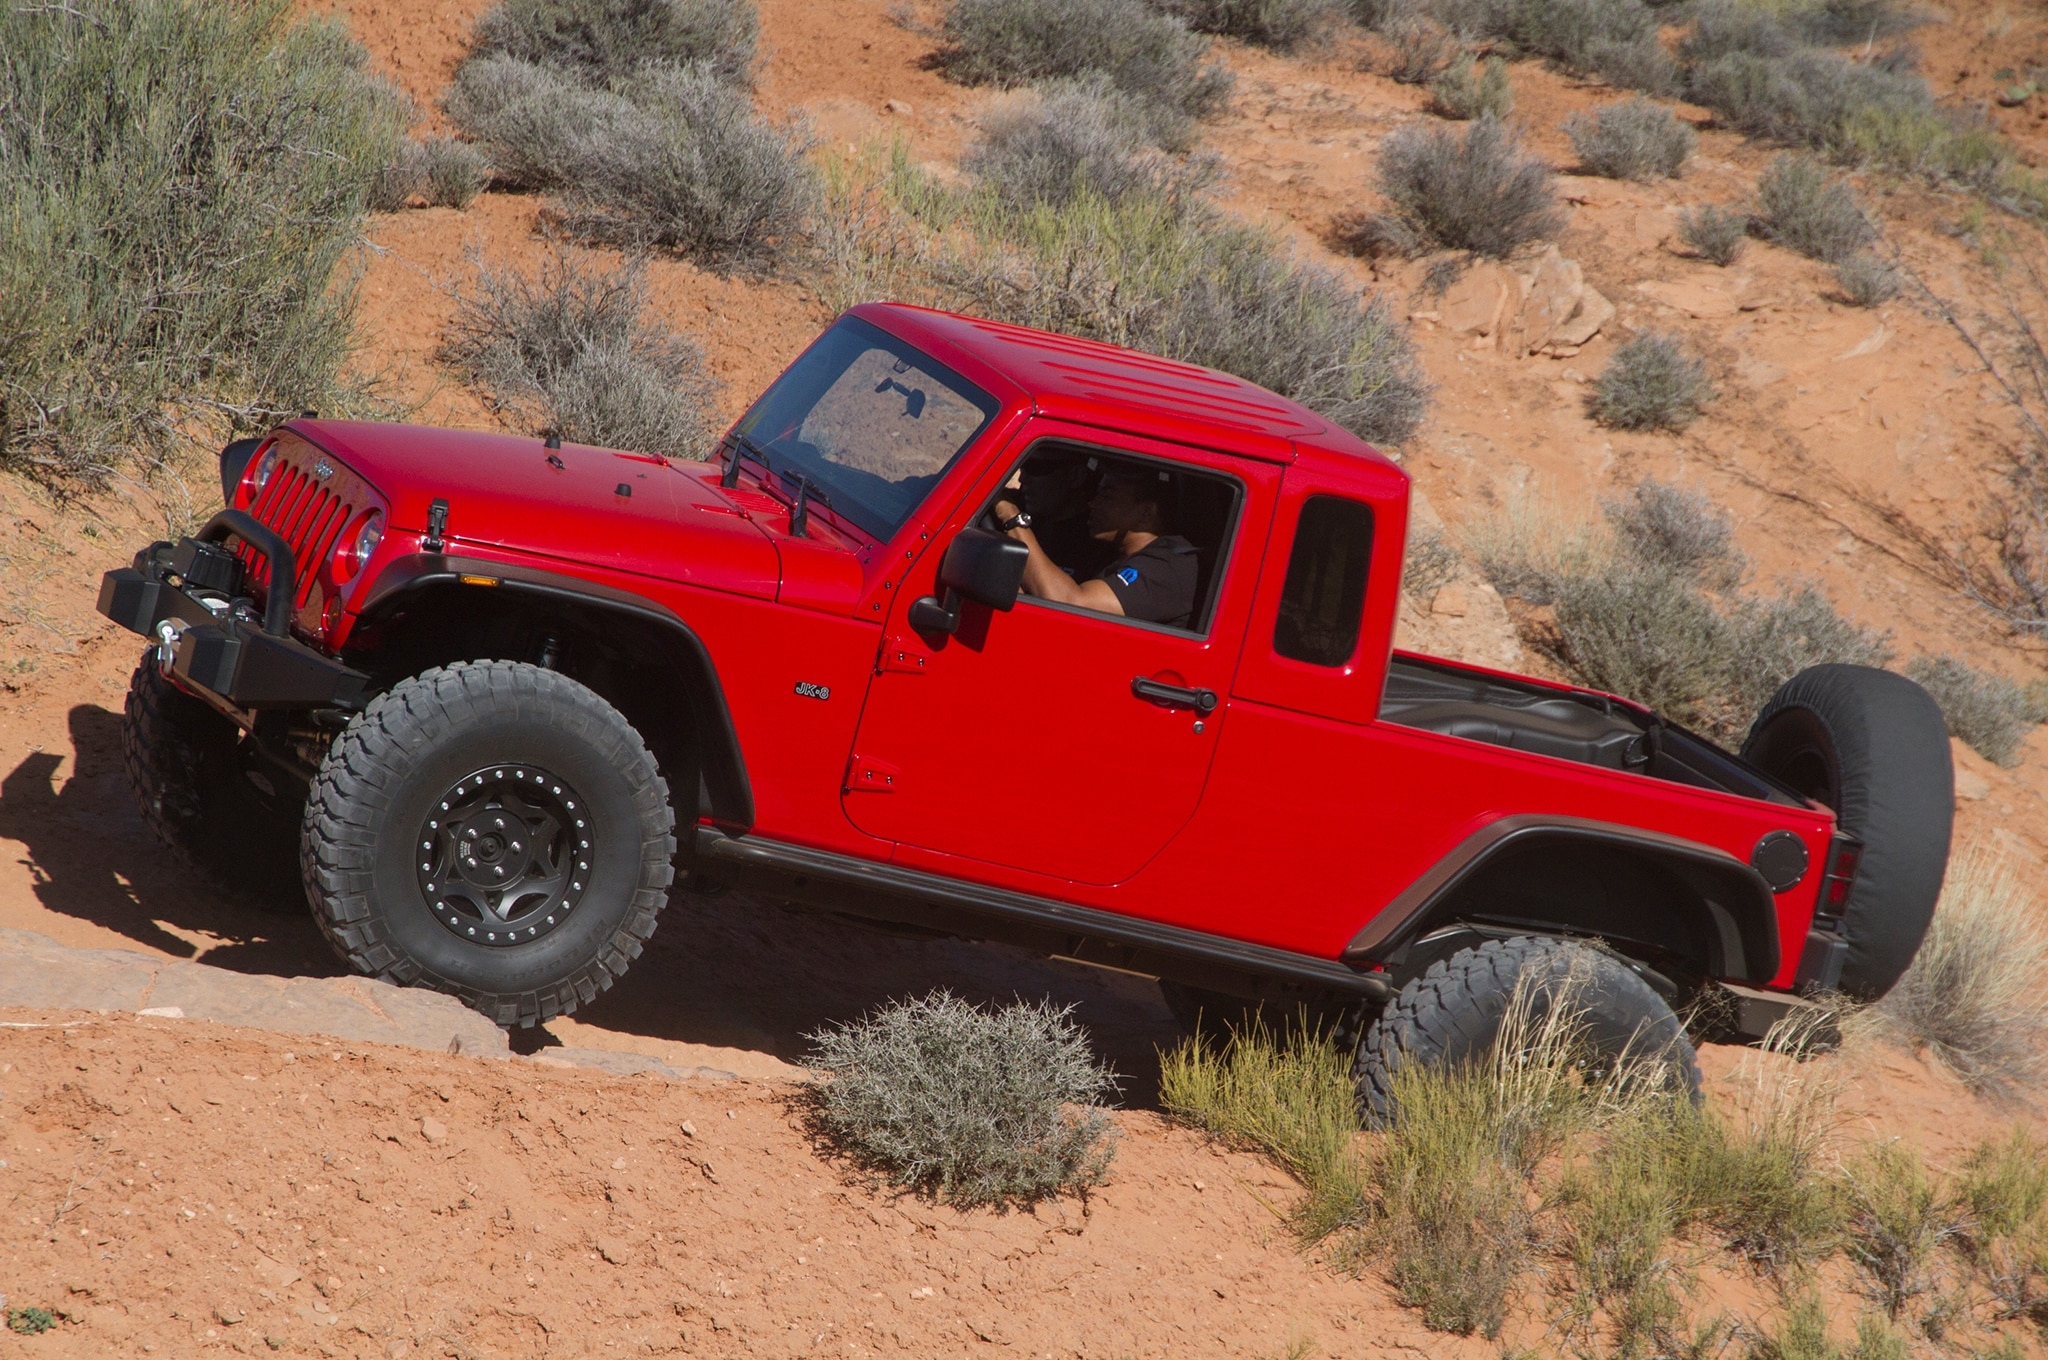 Report: Jeep Wrangler Pickup Confirmed for Debut by 2020